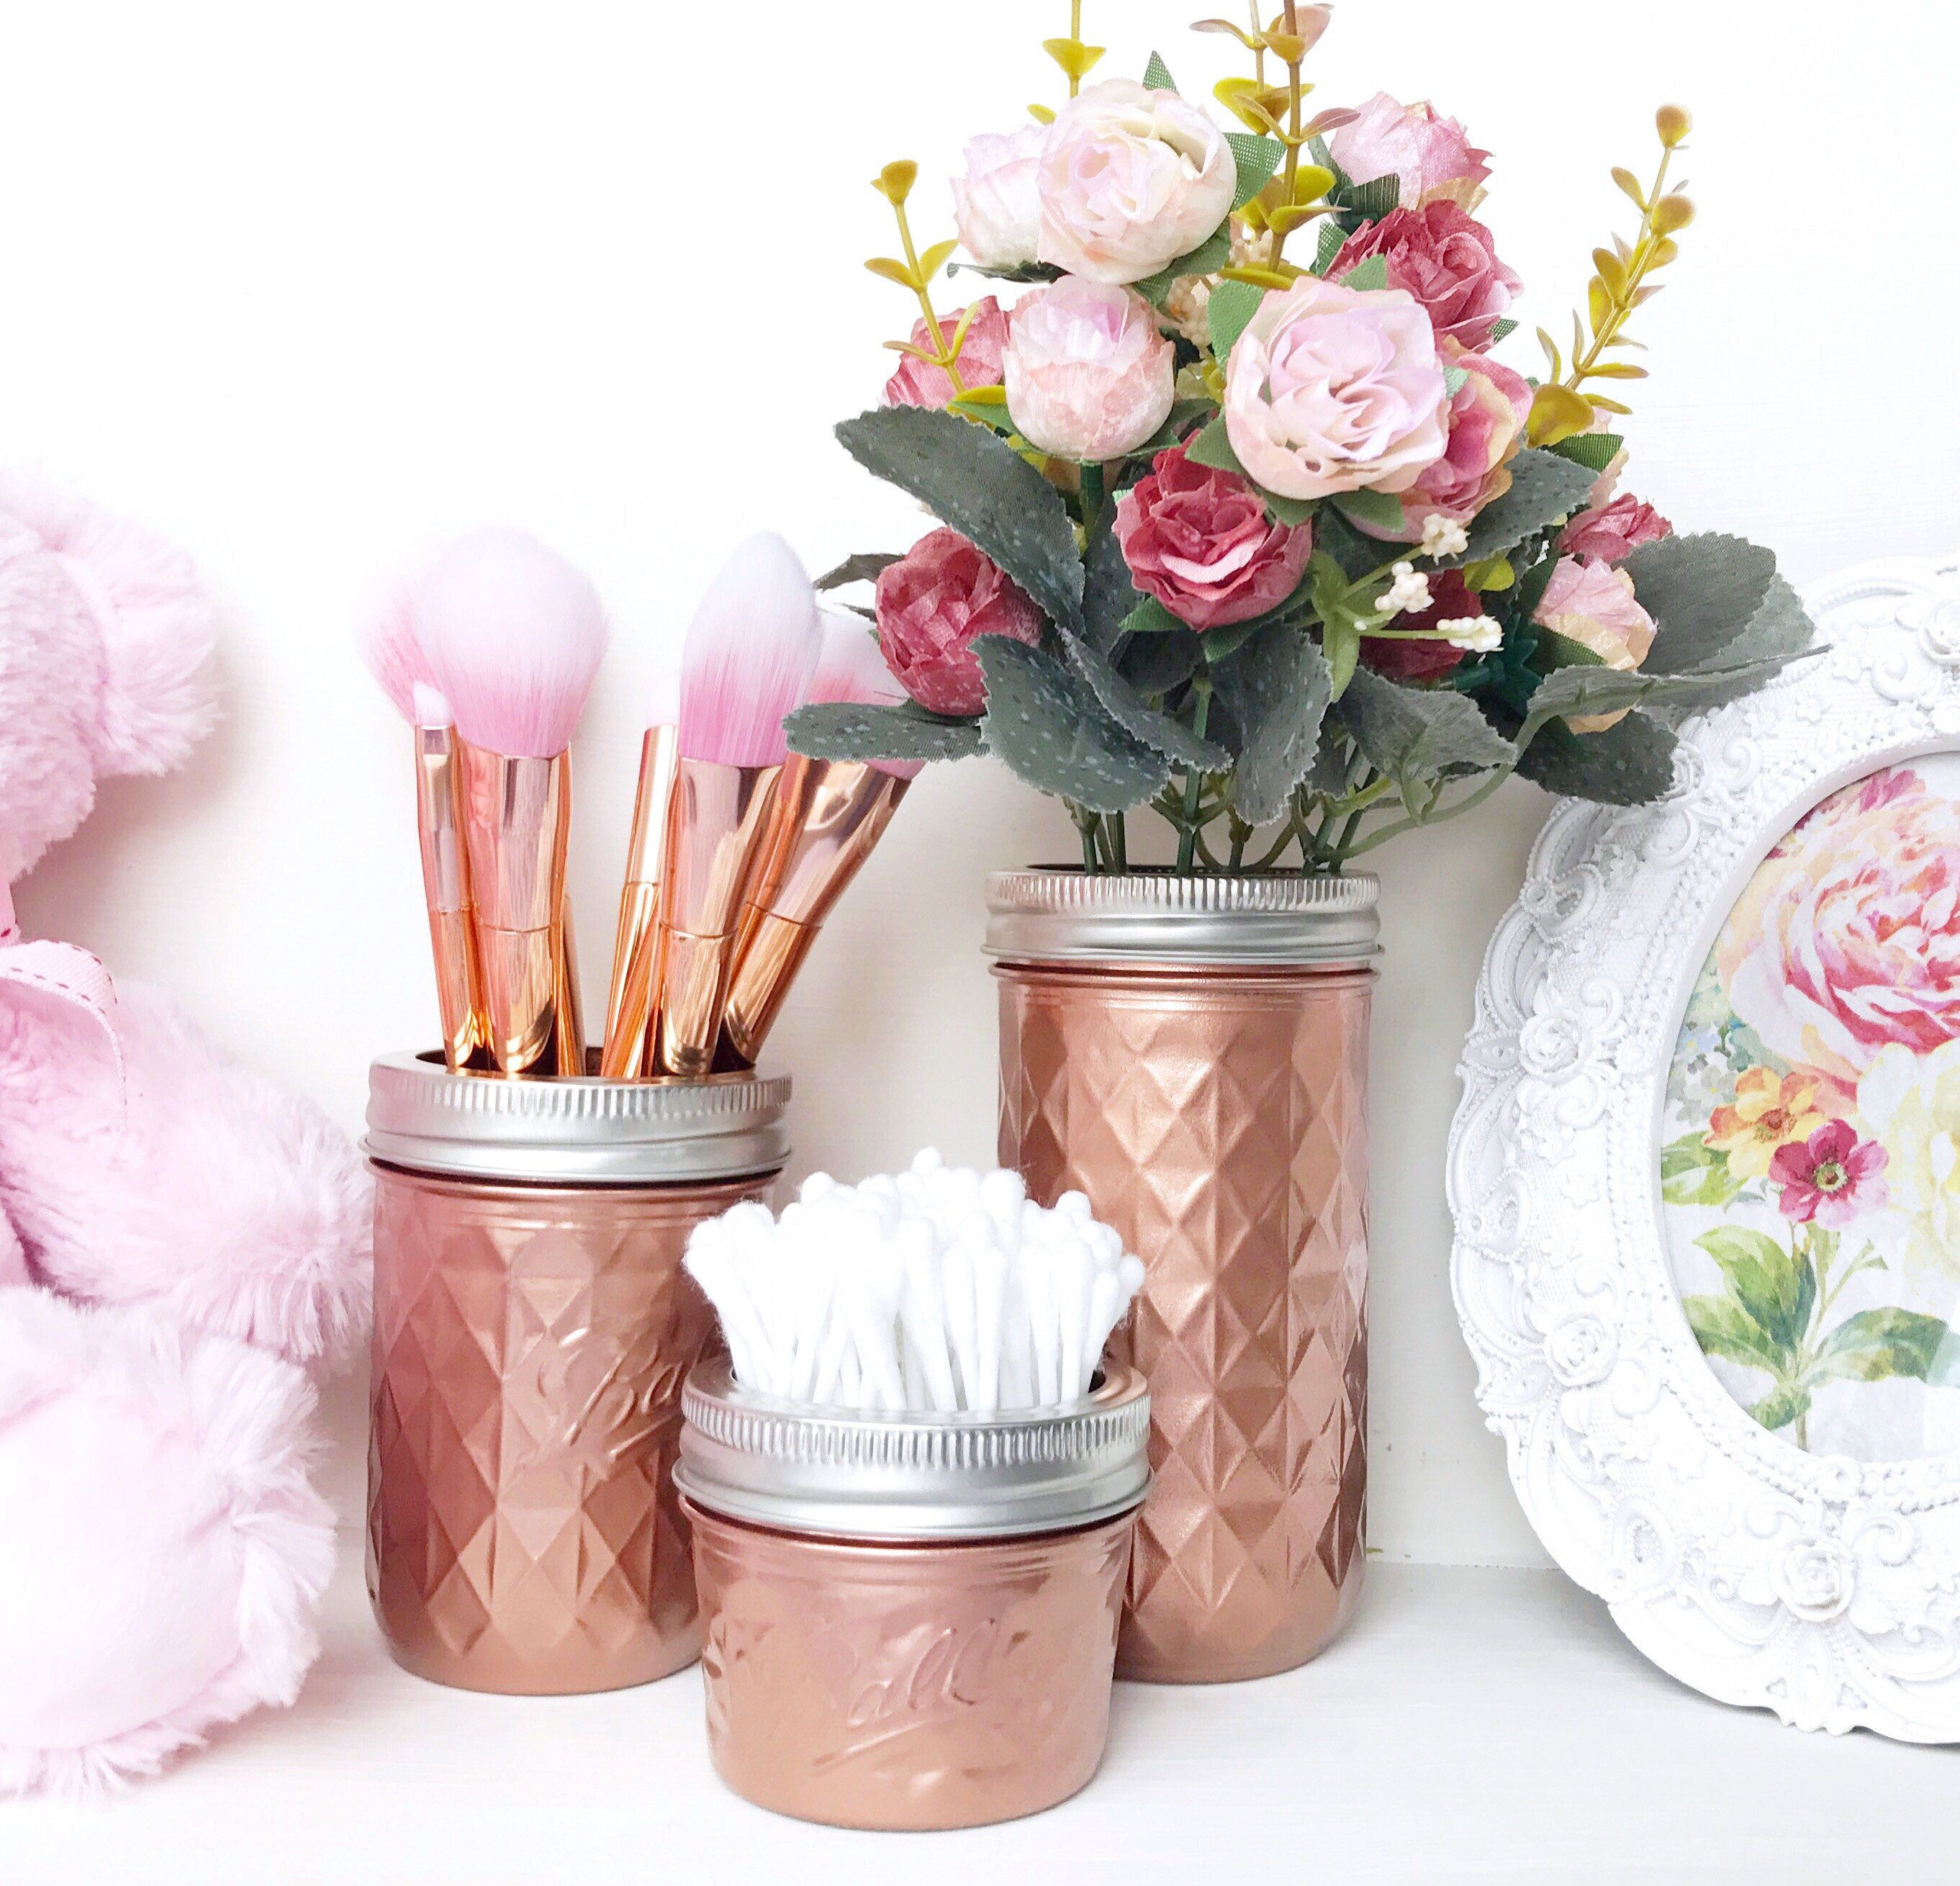 Rose gold makeup brush holder, copper desk accessories